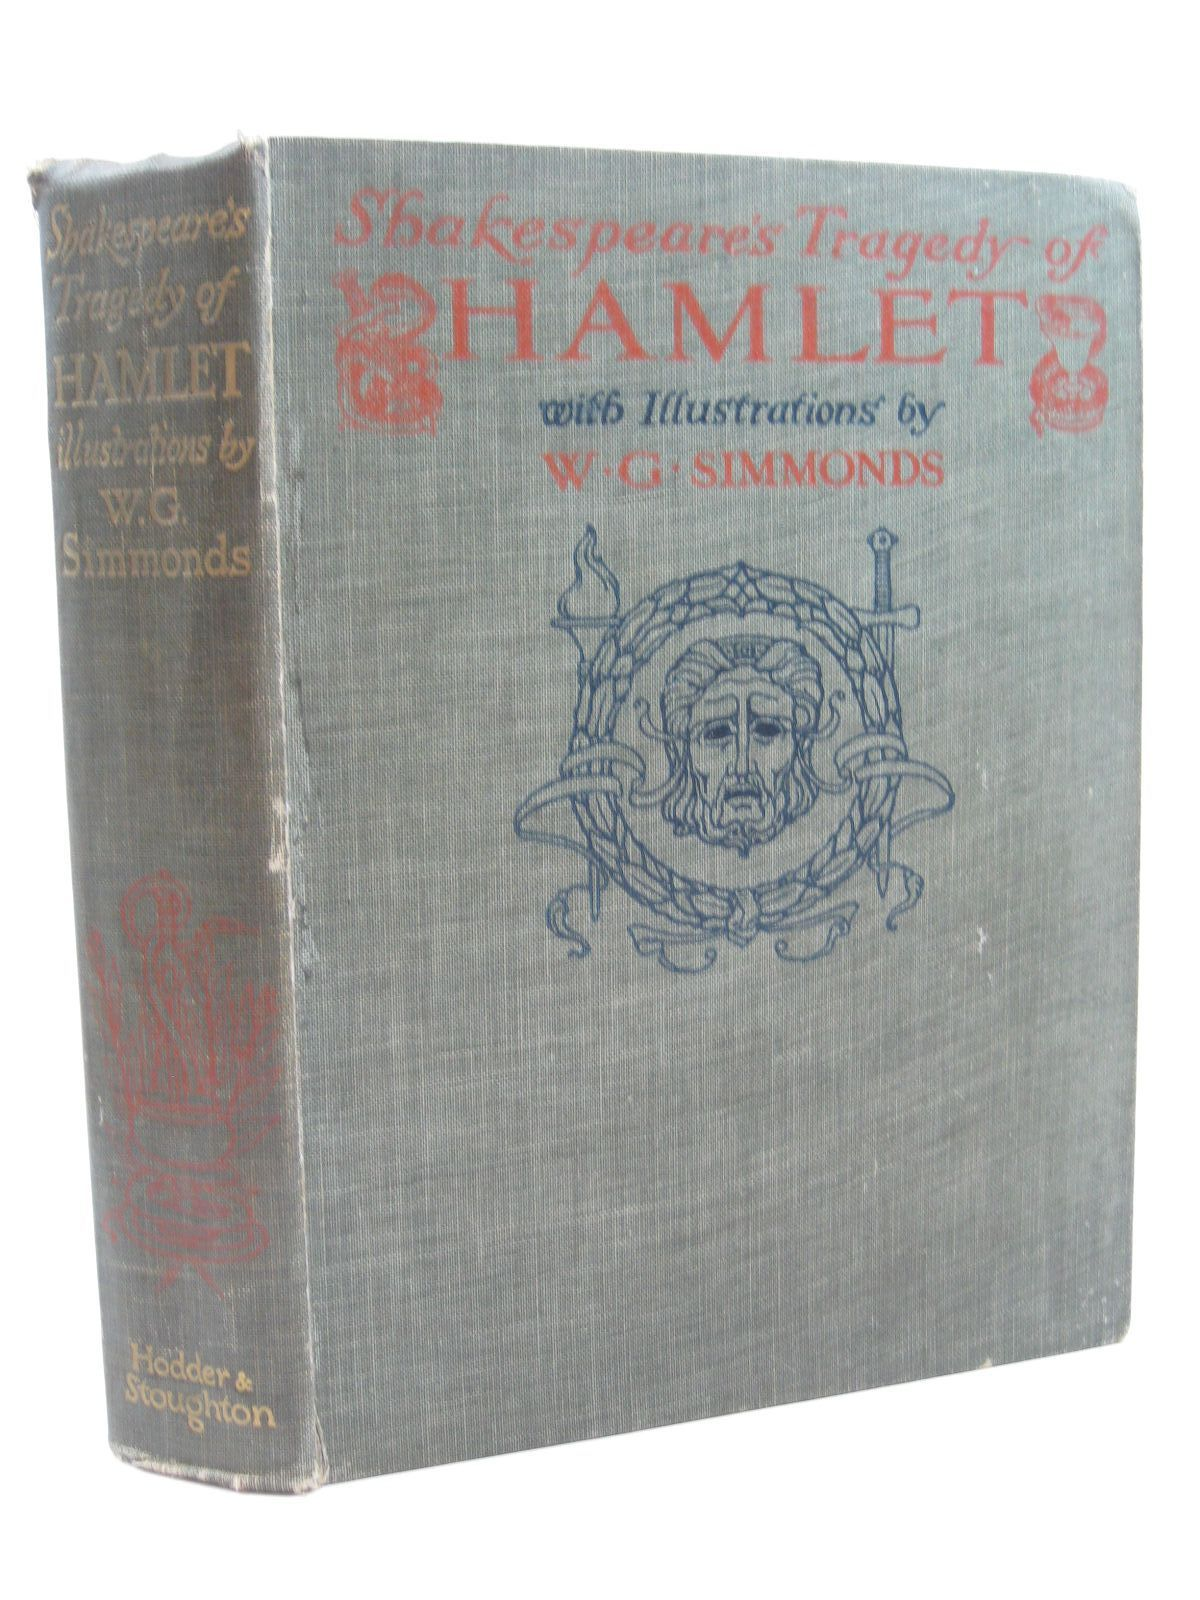 Photo of SHAKESPEARE'S TRAGEDY OF HAMLET written by Shakespeare, William illustrated by Simmonds, W.G. published by Hodder & Stoughton (STOCK CODE: 1316703)  for sale by Stella & Rose's Books